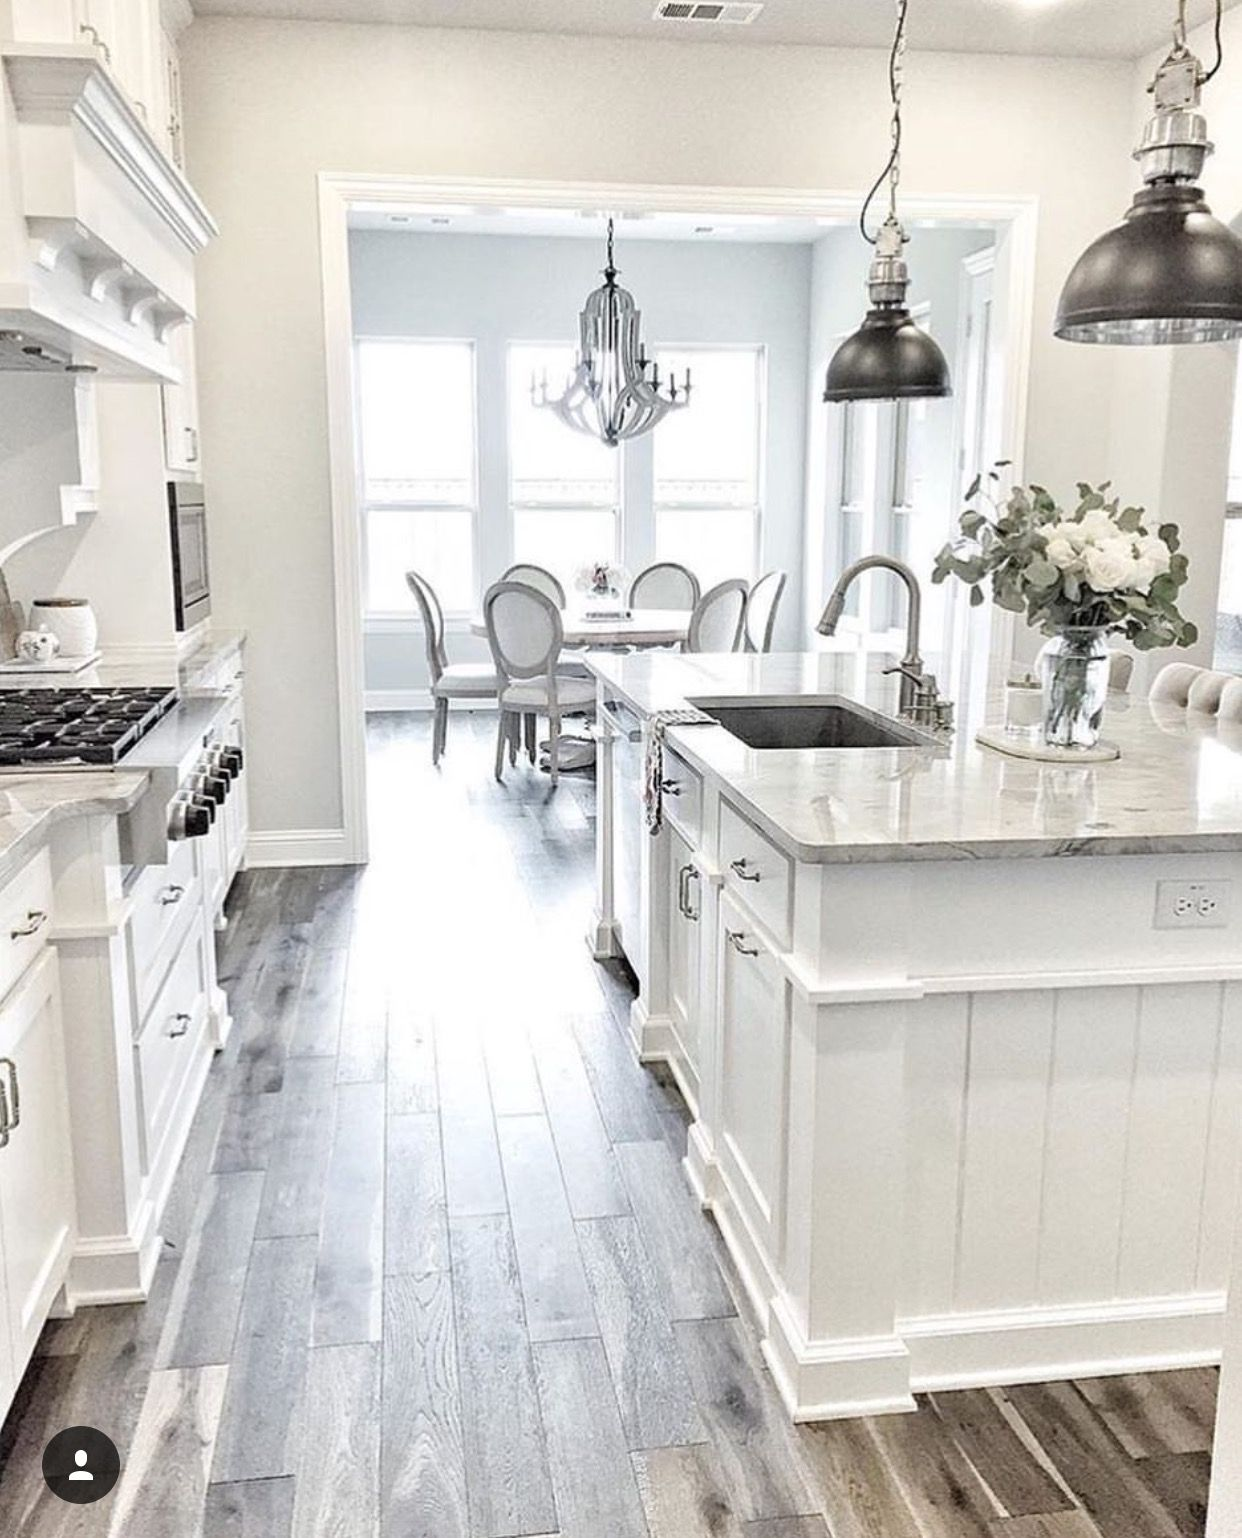 Pin by shelby spencer campbell on remodel pinterest kitchen